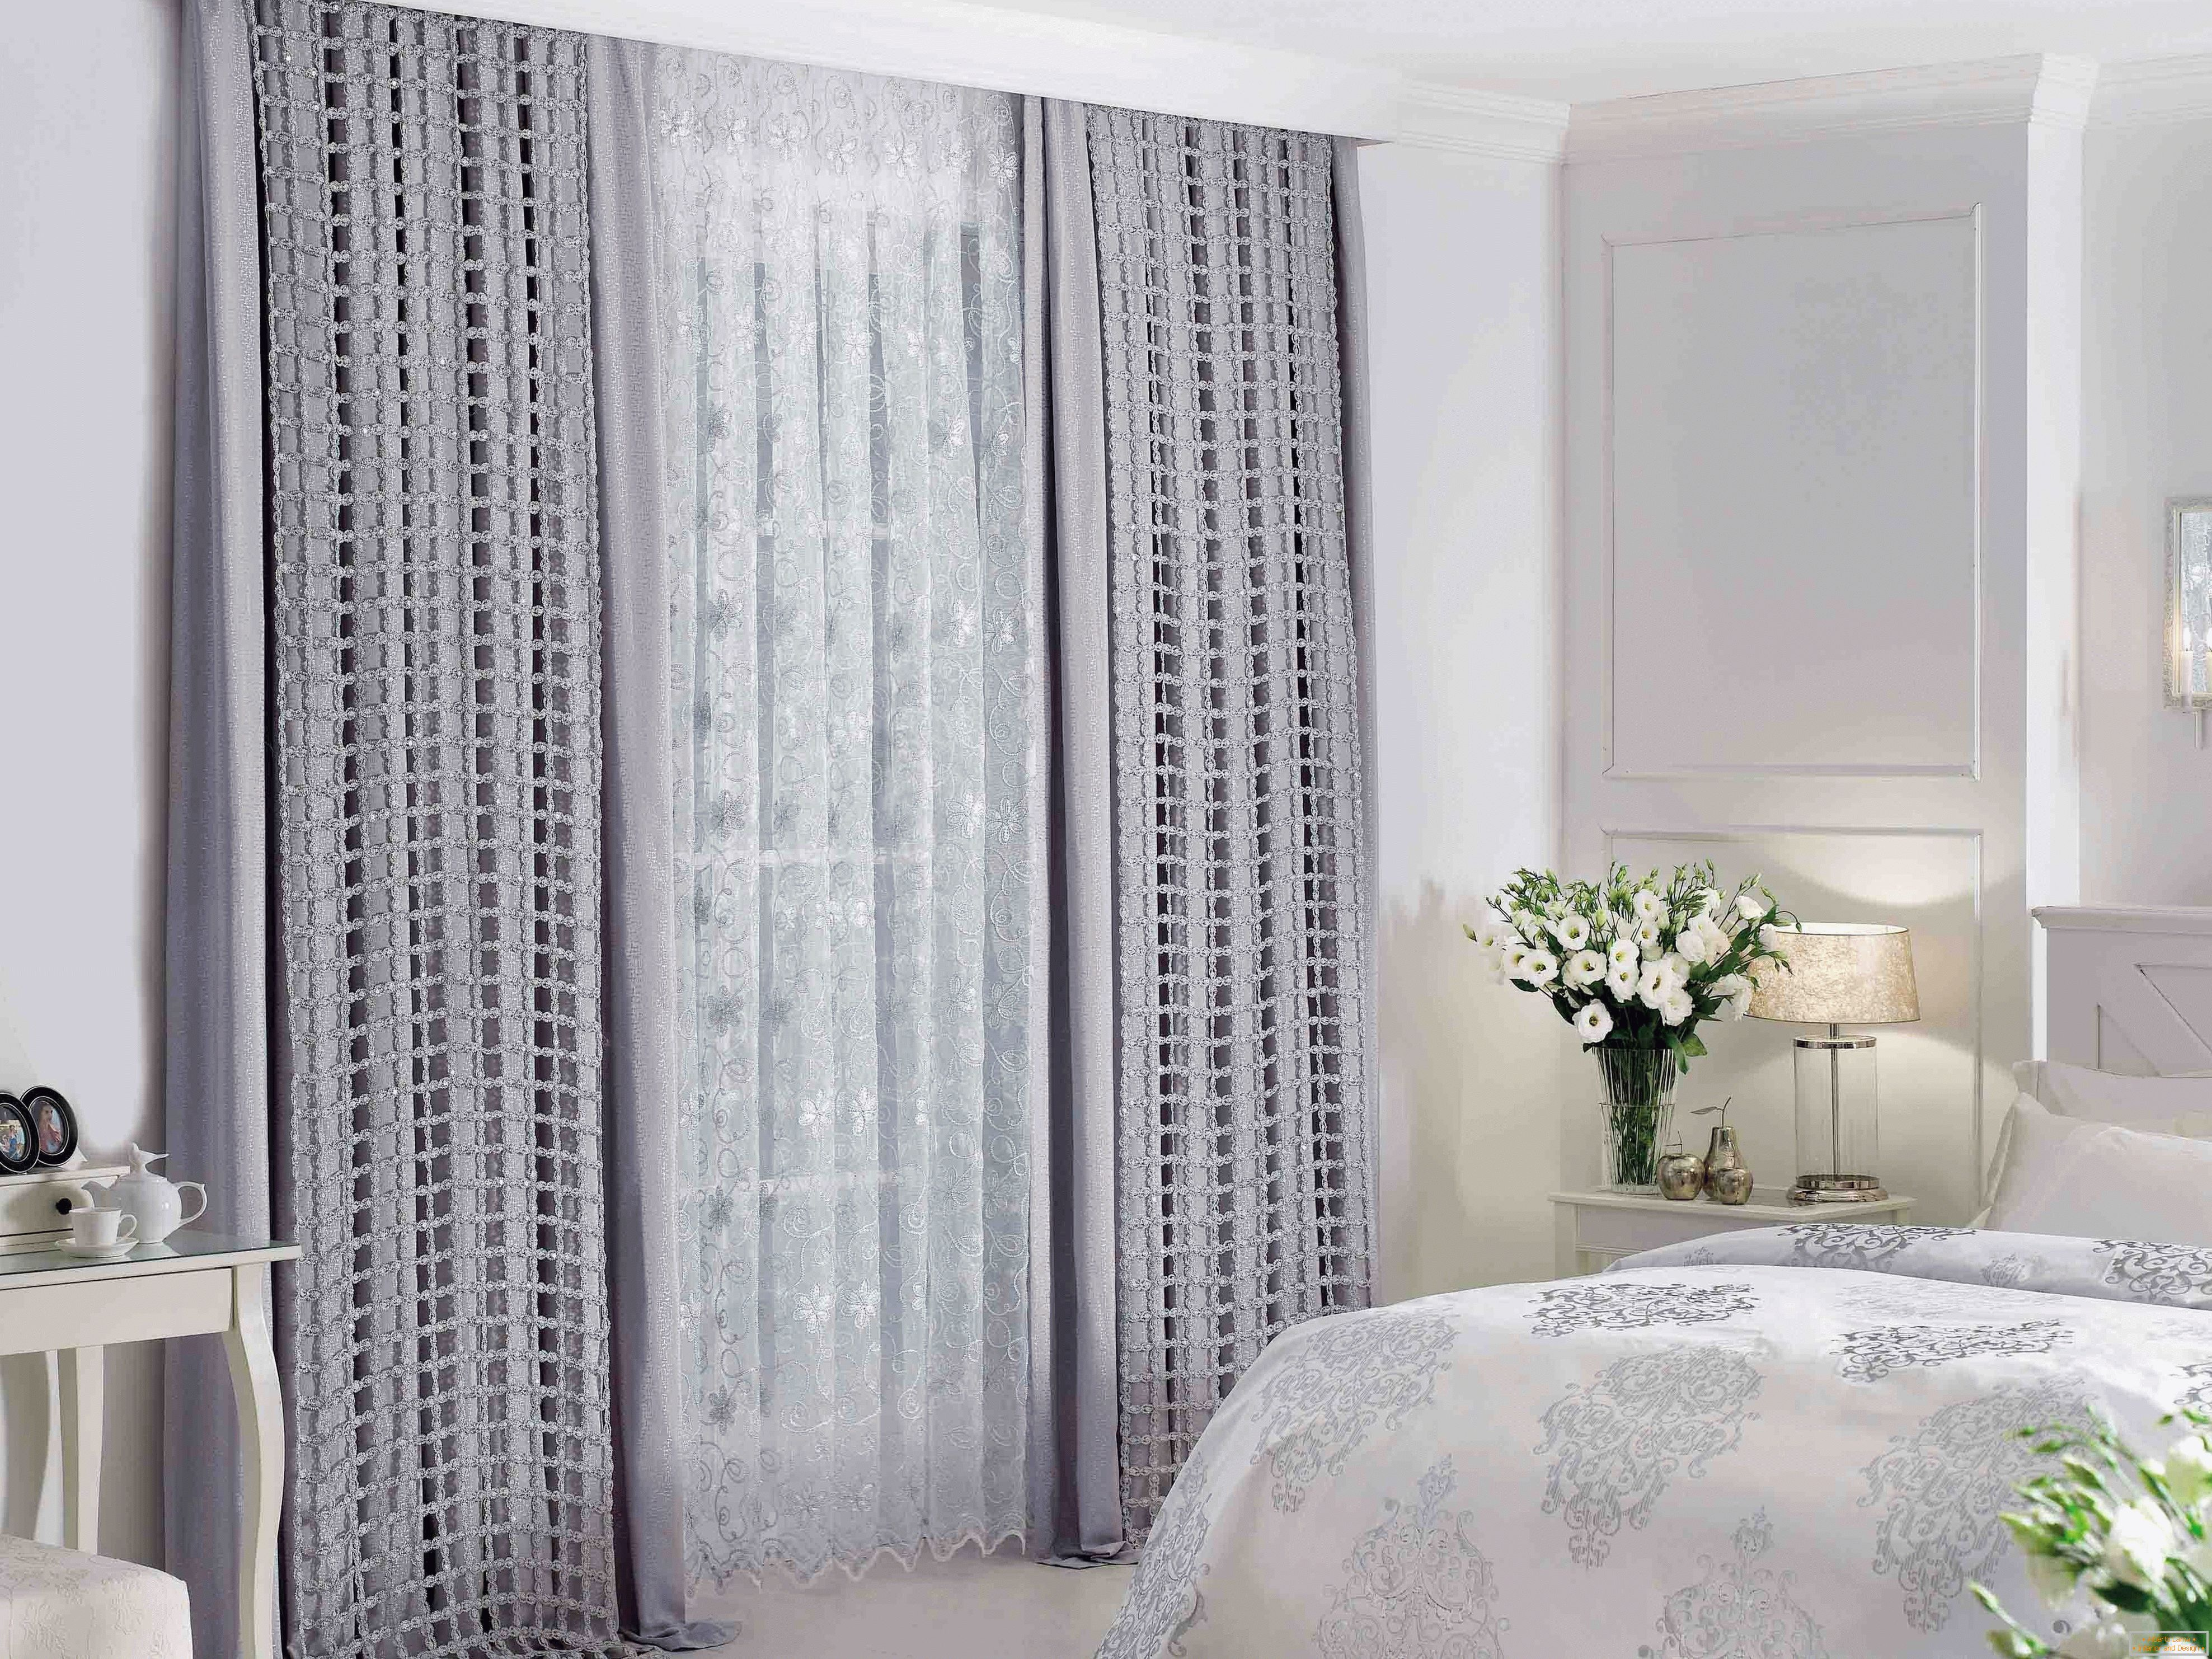 Cortinas grises brillantes